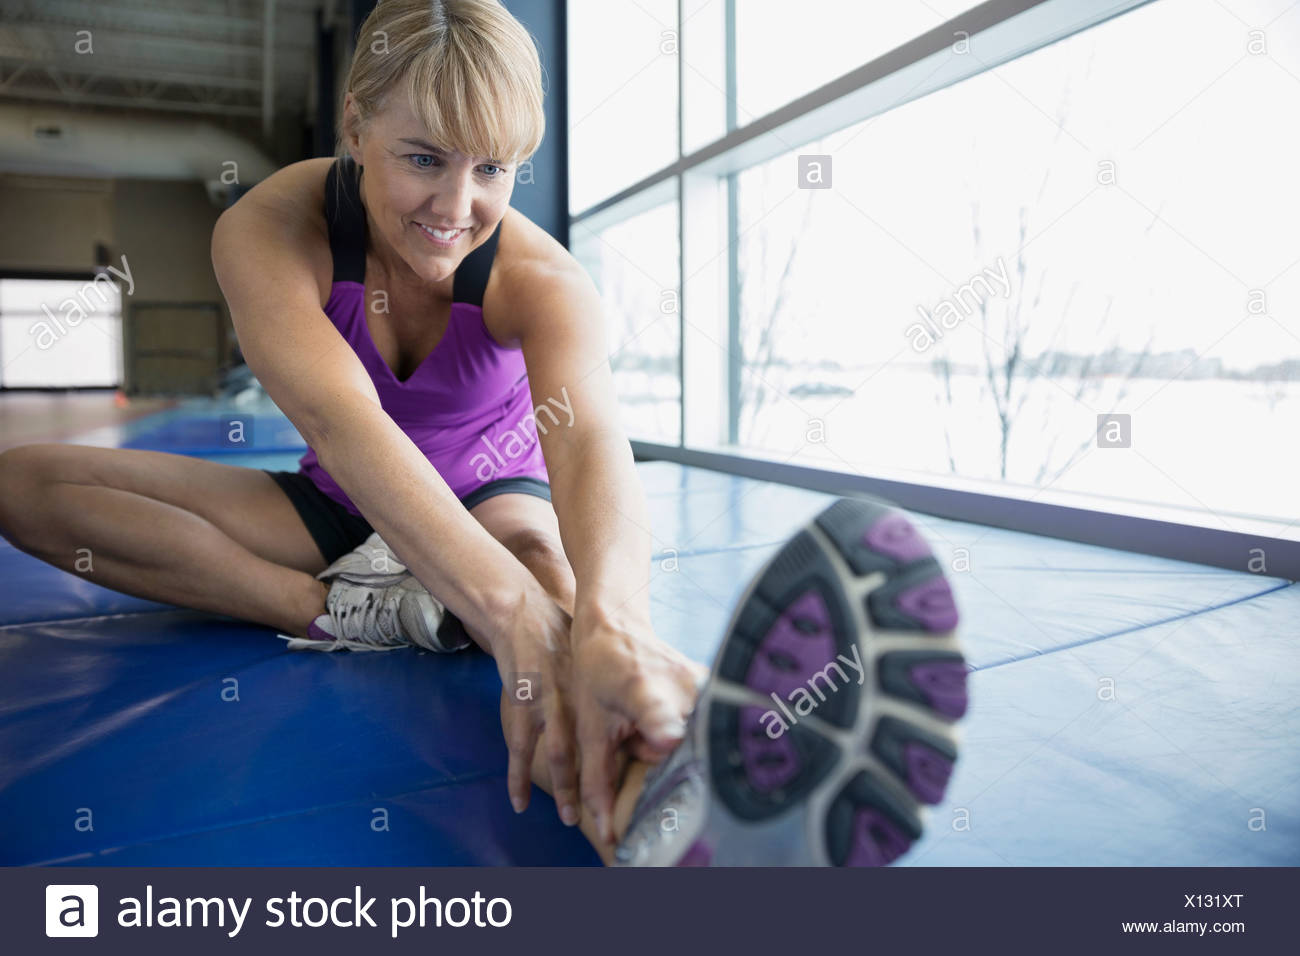 Woman stretching leg at gym Photo Stock